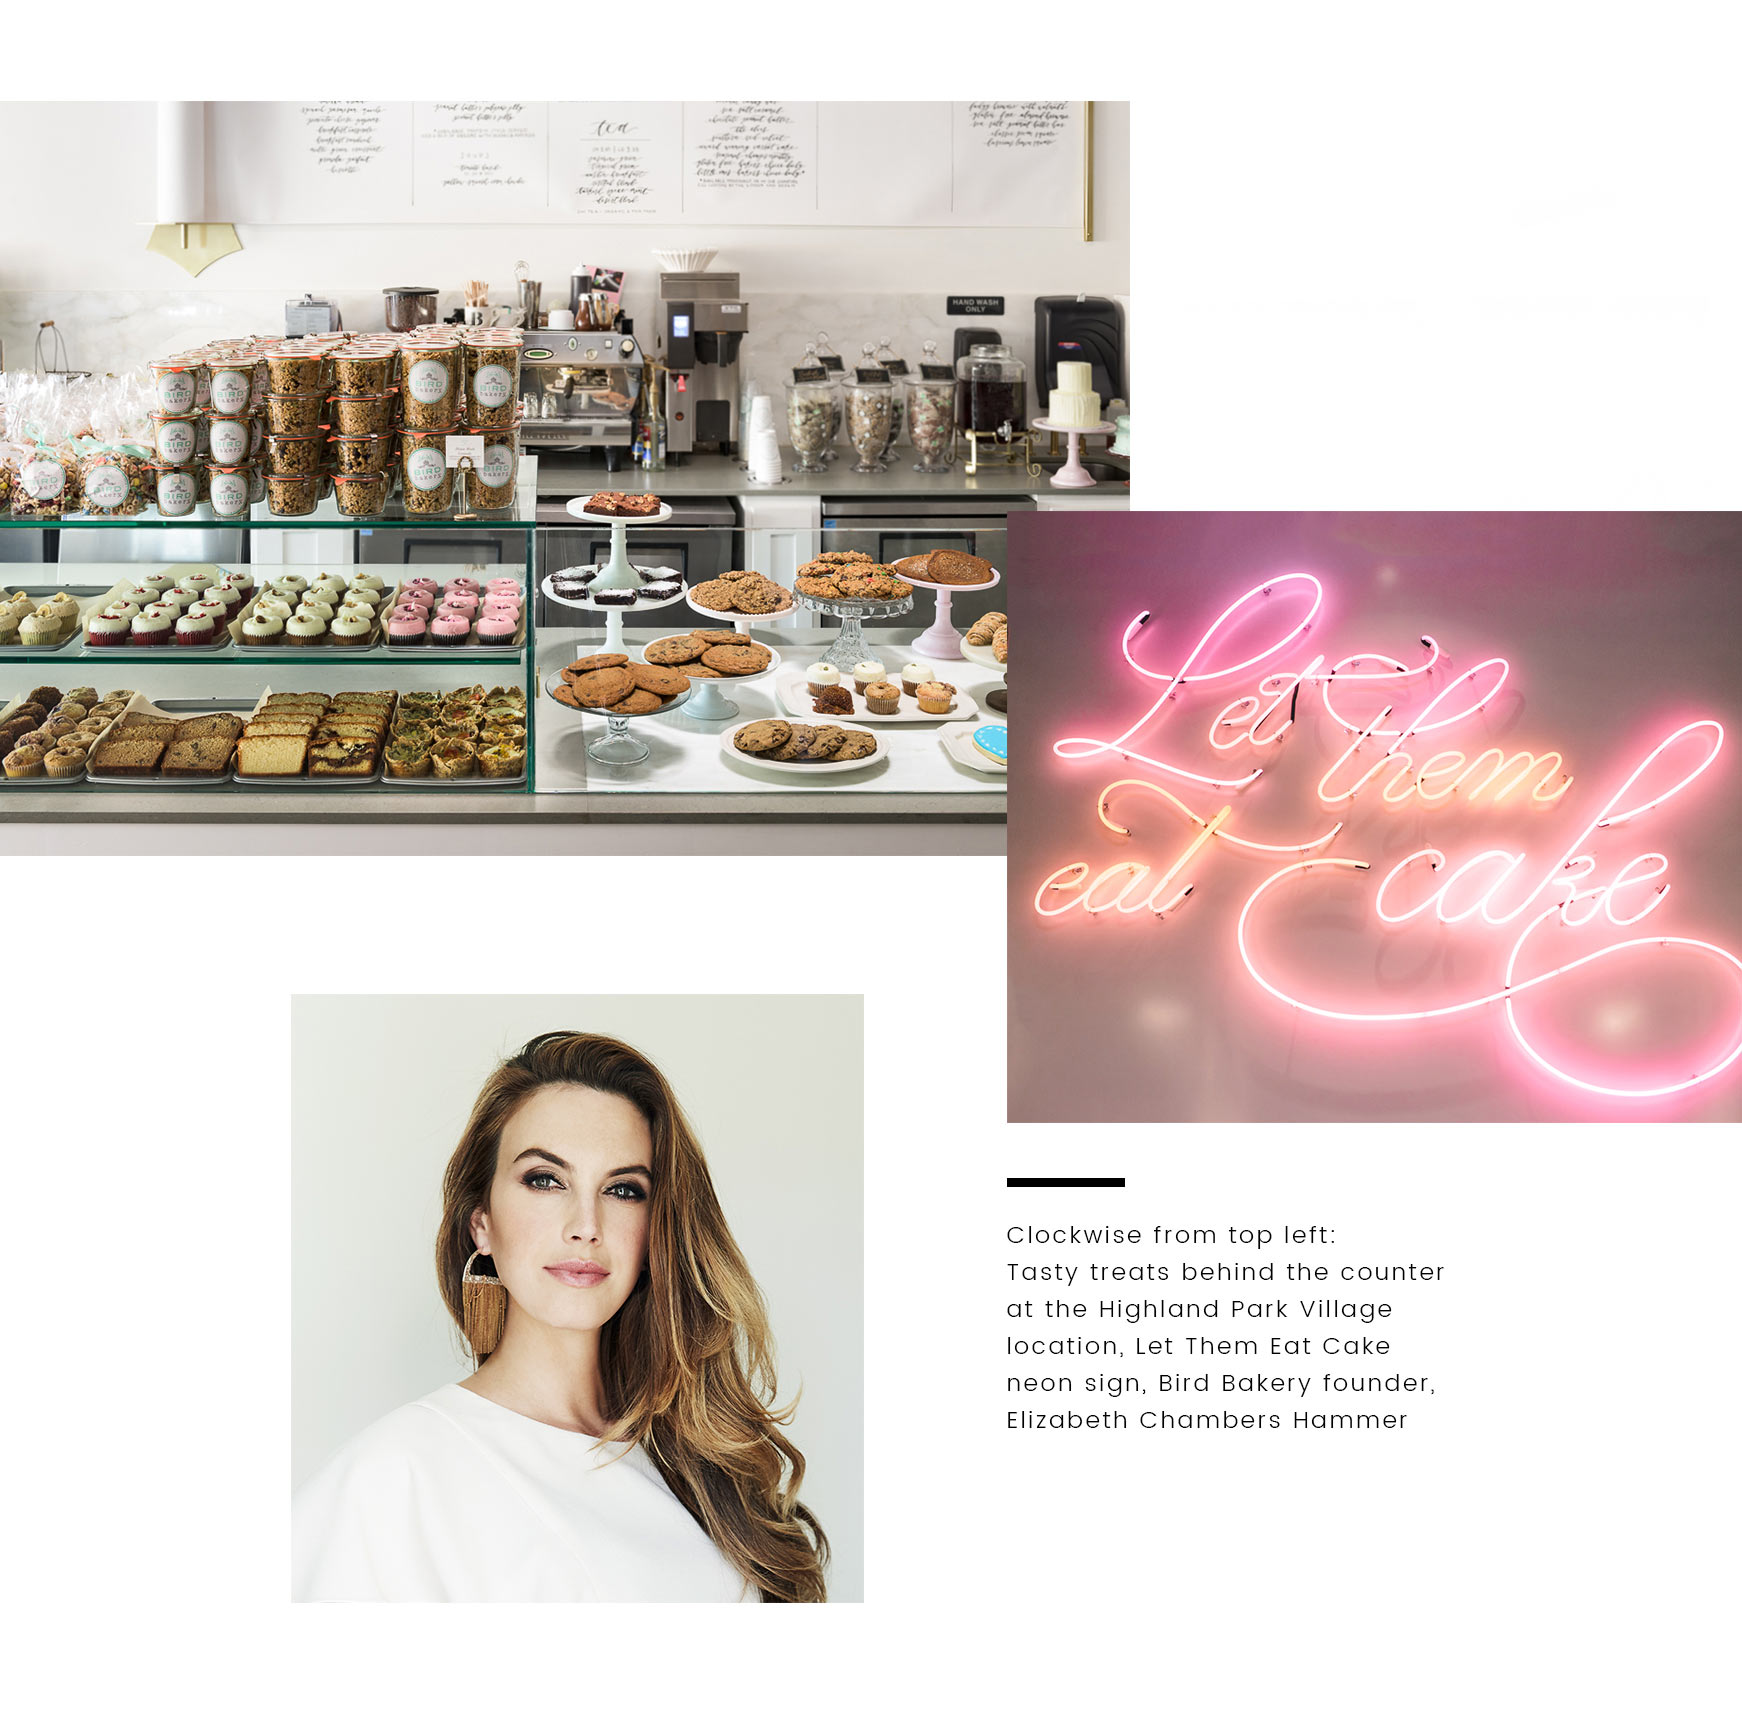 Clockwise from top left: Tasty treats behind the counter at the Highland Park Village location, Let them Eat Cake neon sign, Bird Bakery founder Elizabeth Chambers